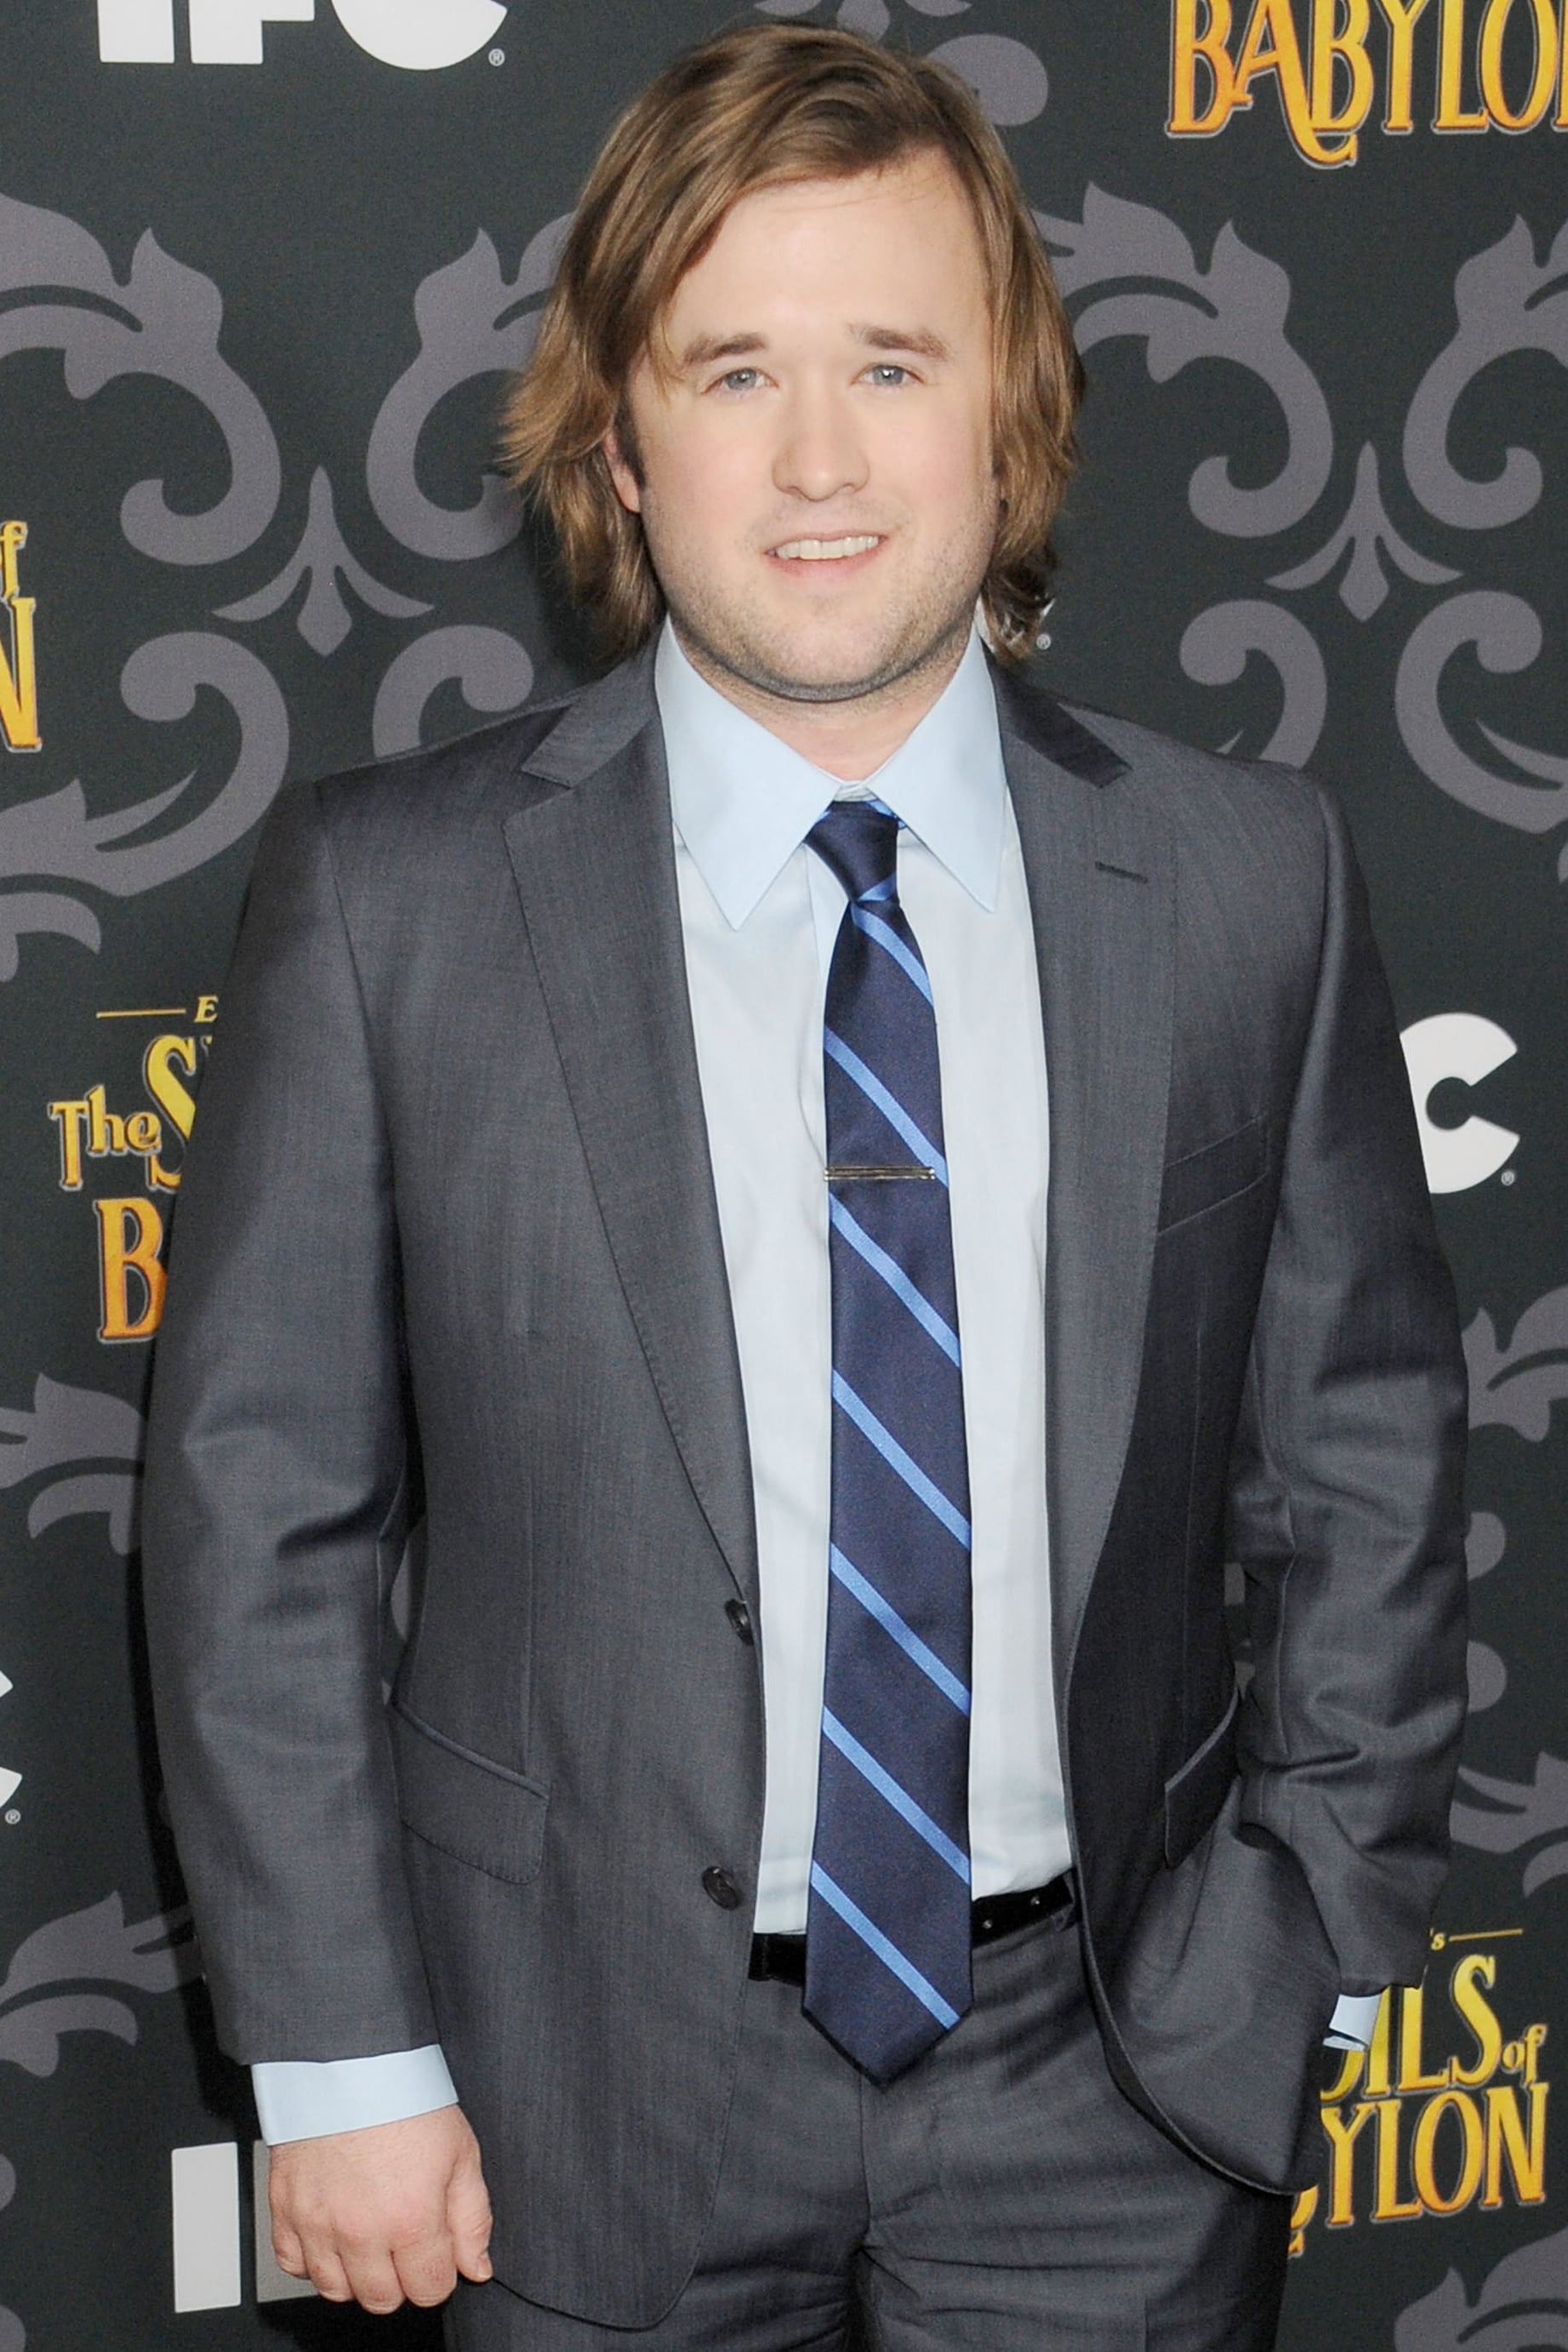 Haley Joel Osment will be in the Entourage movie in a supporting role. He joins Jeremy Piven, Billy Bob Thornton, Adrian Grenier, Kevin Dillon, Jerry Ferrara, and Kid Cudi as Ari's new assistant.